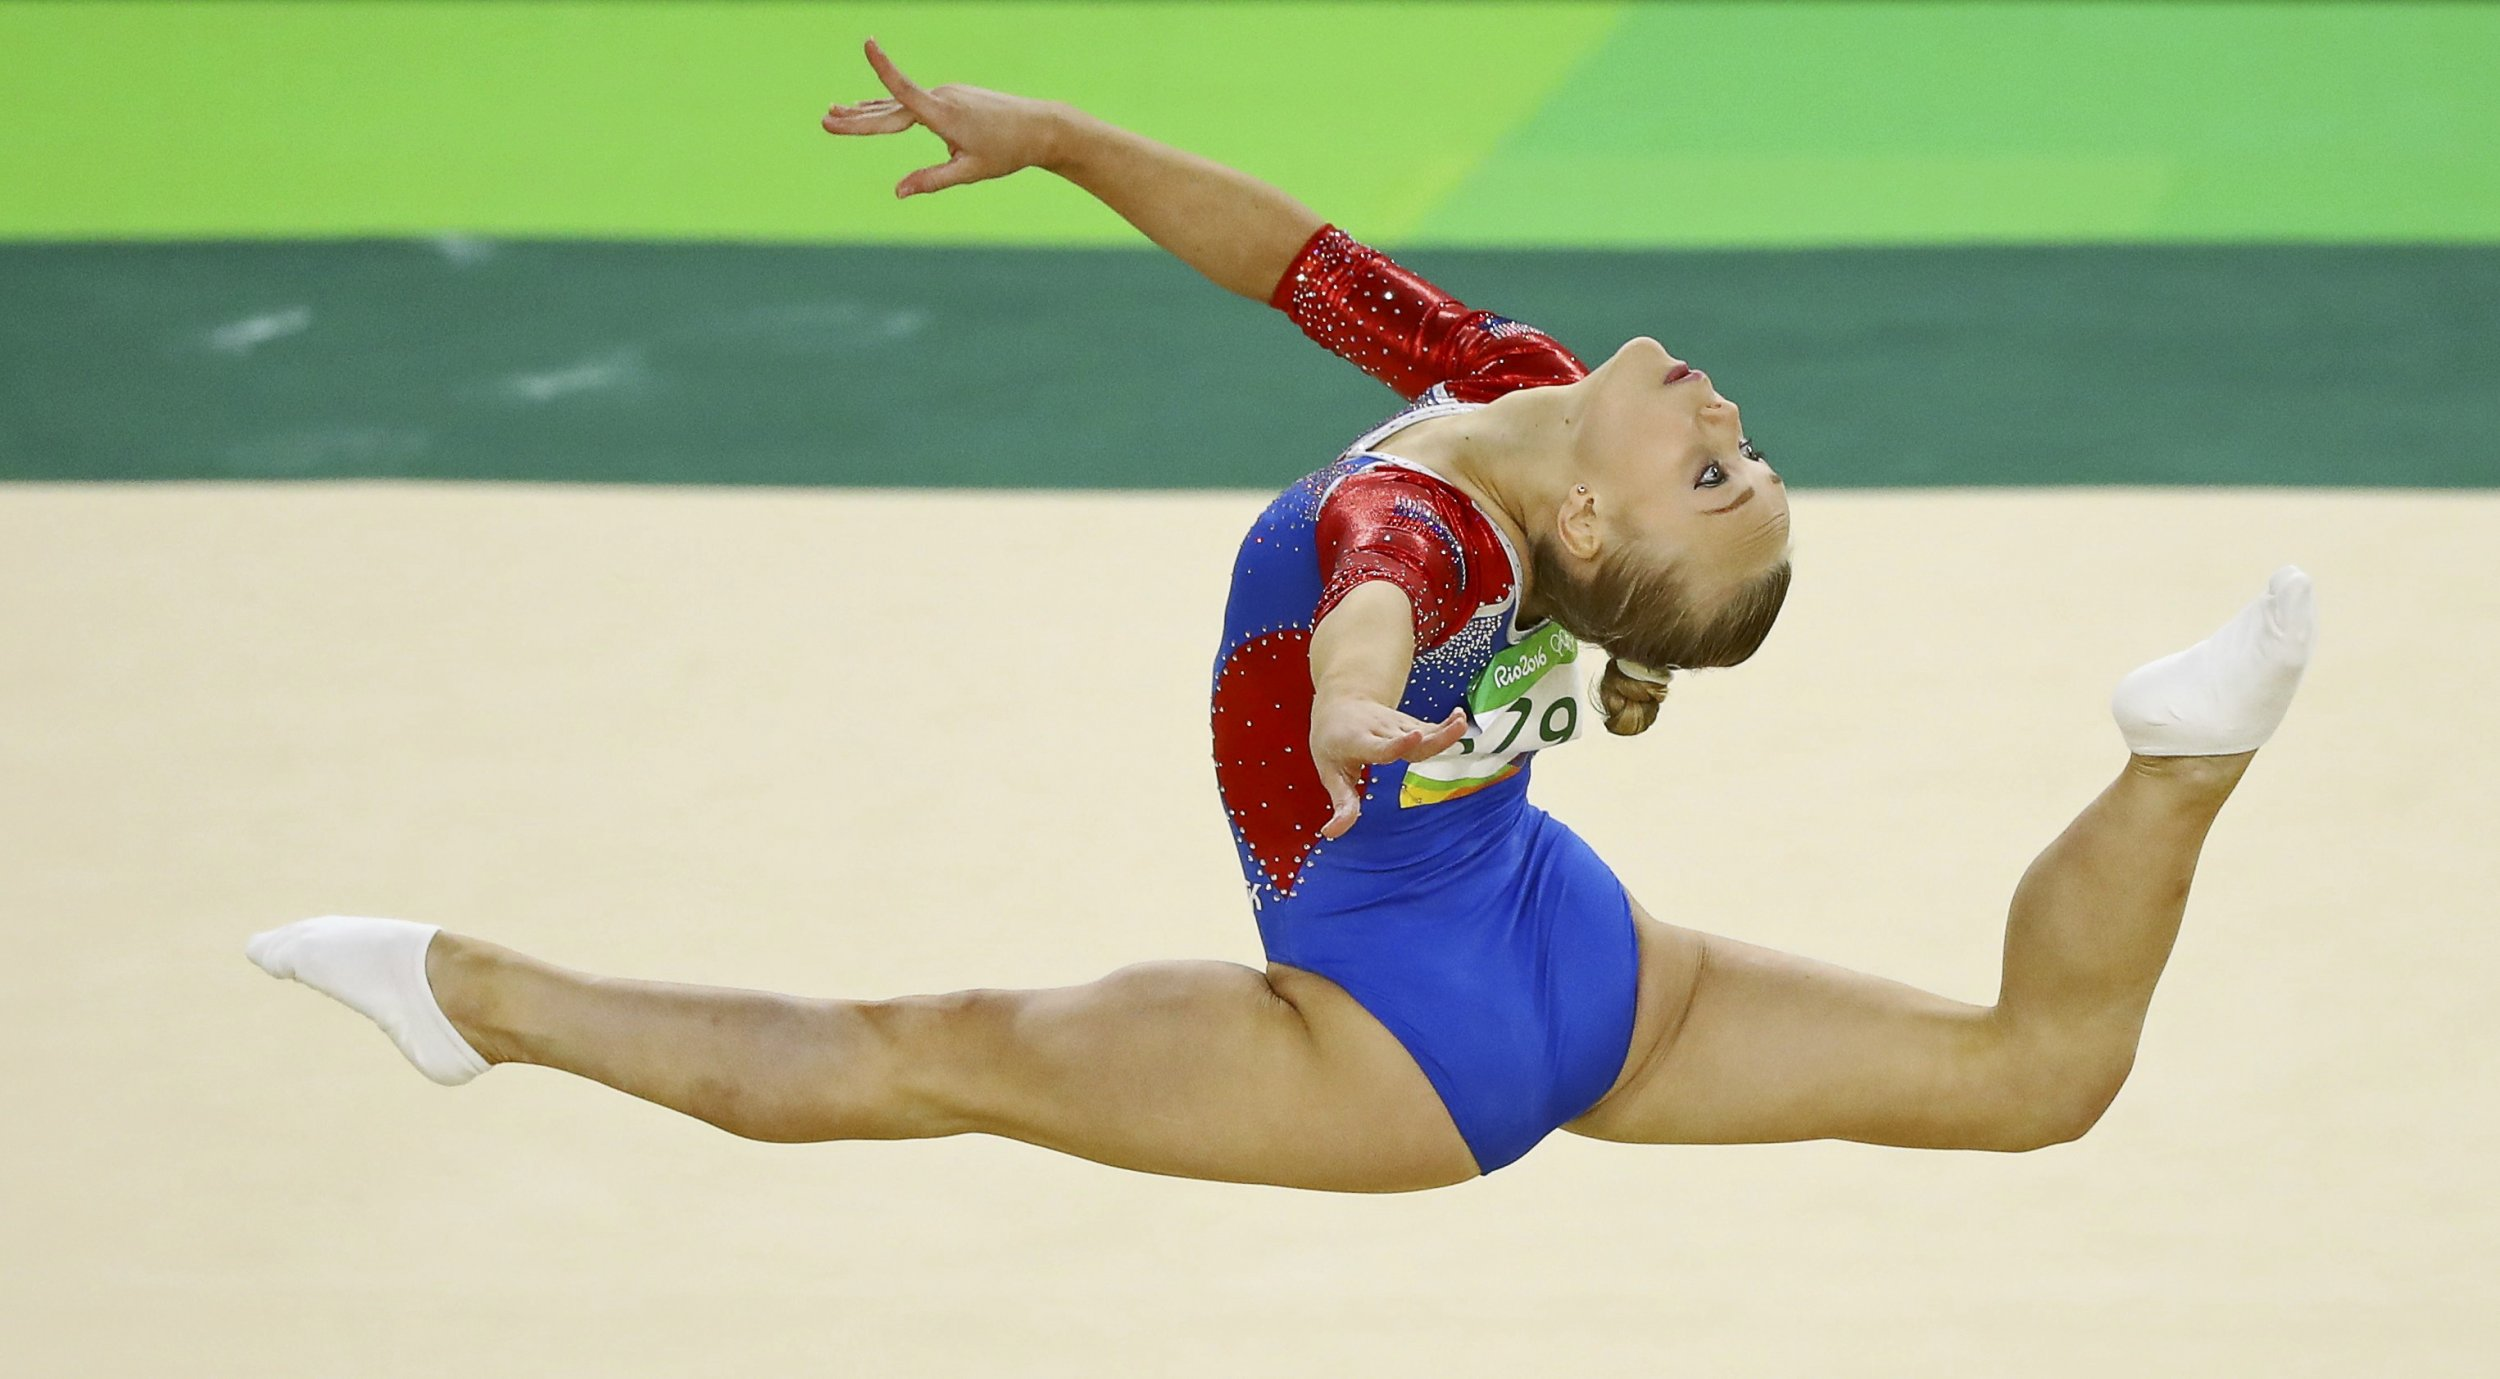 Russian Gymnast S Looks Targeted By Olympic Committee After